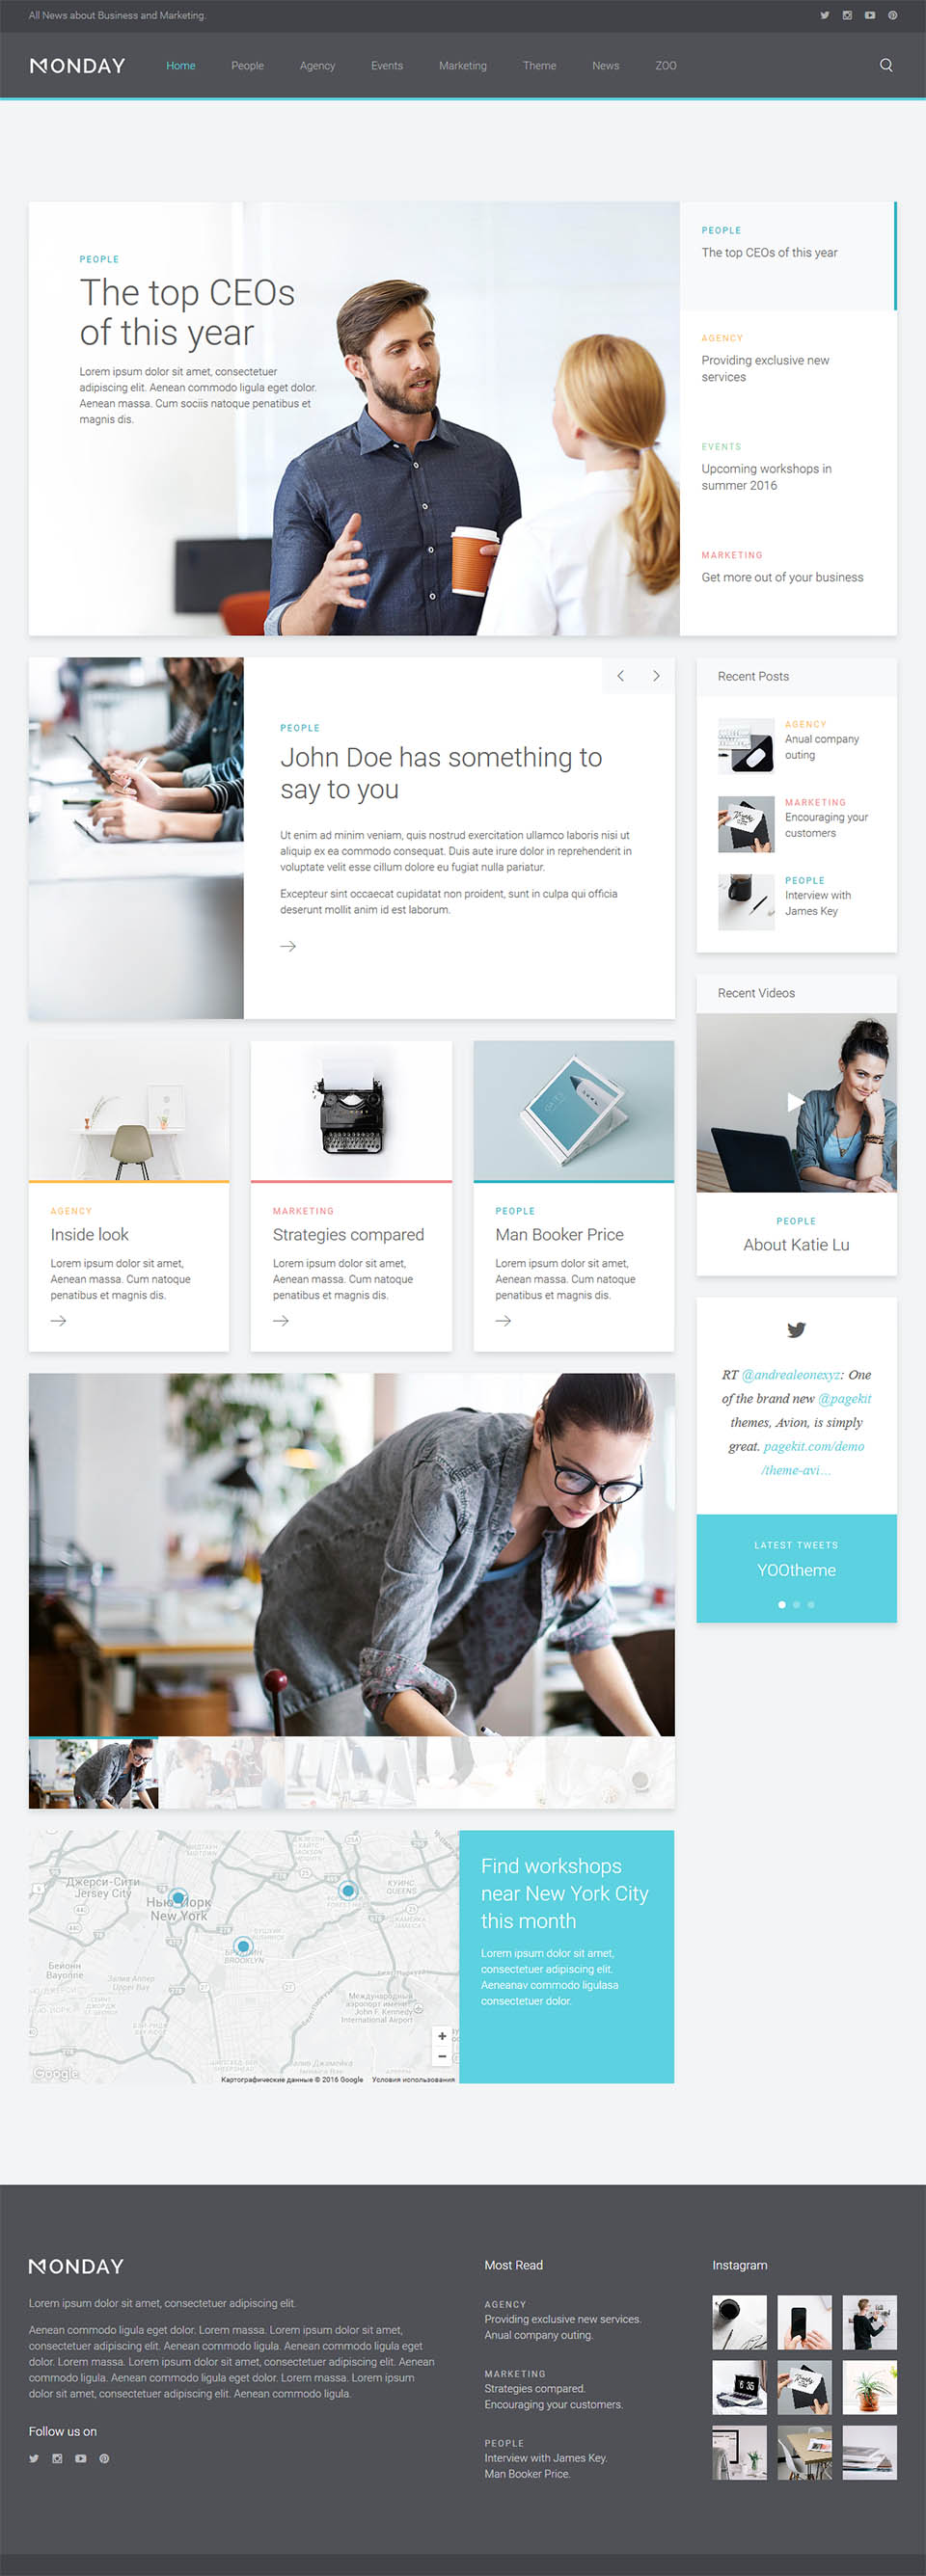 Yootheme monday v109 business template for joomla 37 template for joomla yootheme monday free download wajeb Gallery